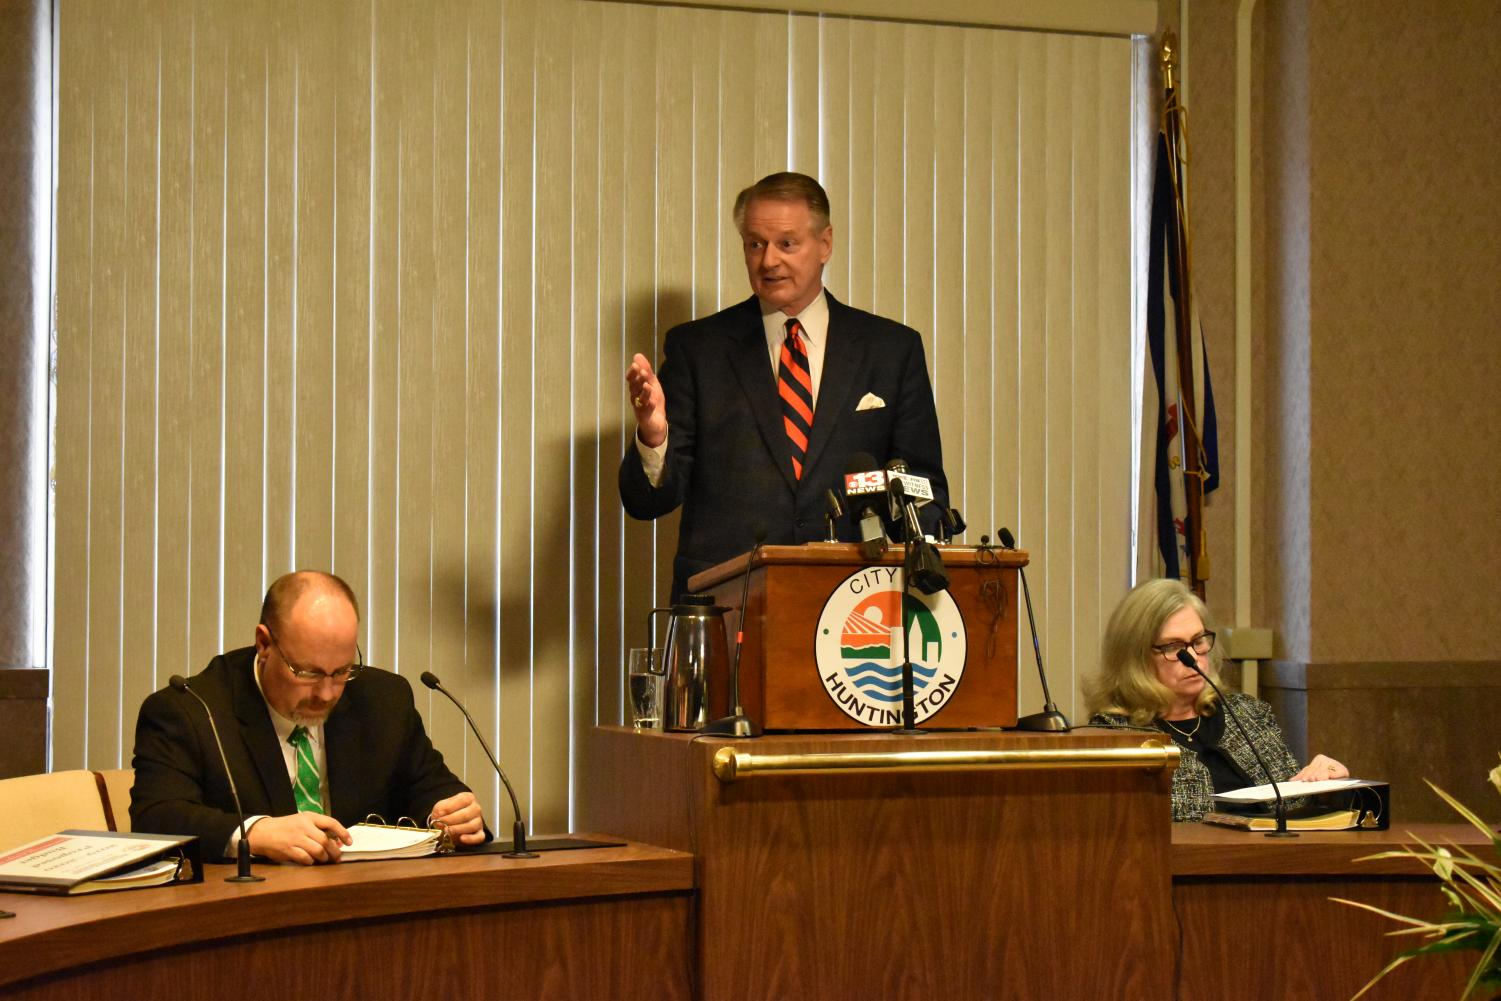 Huntington Mayor Steve Williams delivers the 2019 State of the City address, Friday in the City Council Chambers.